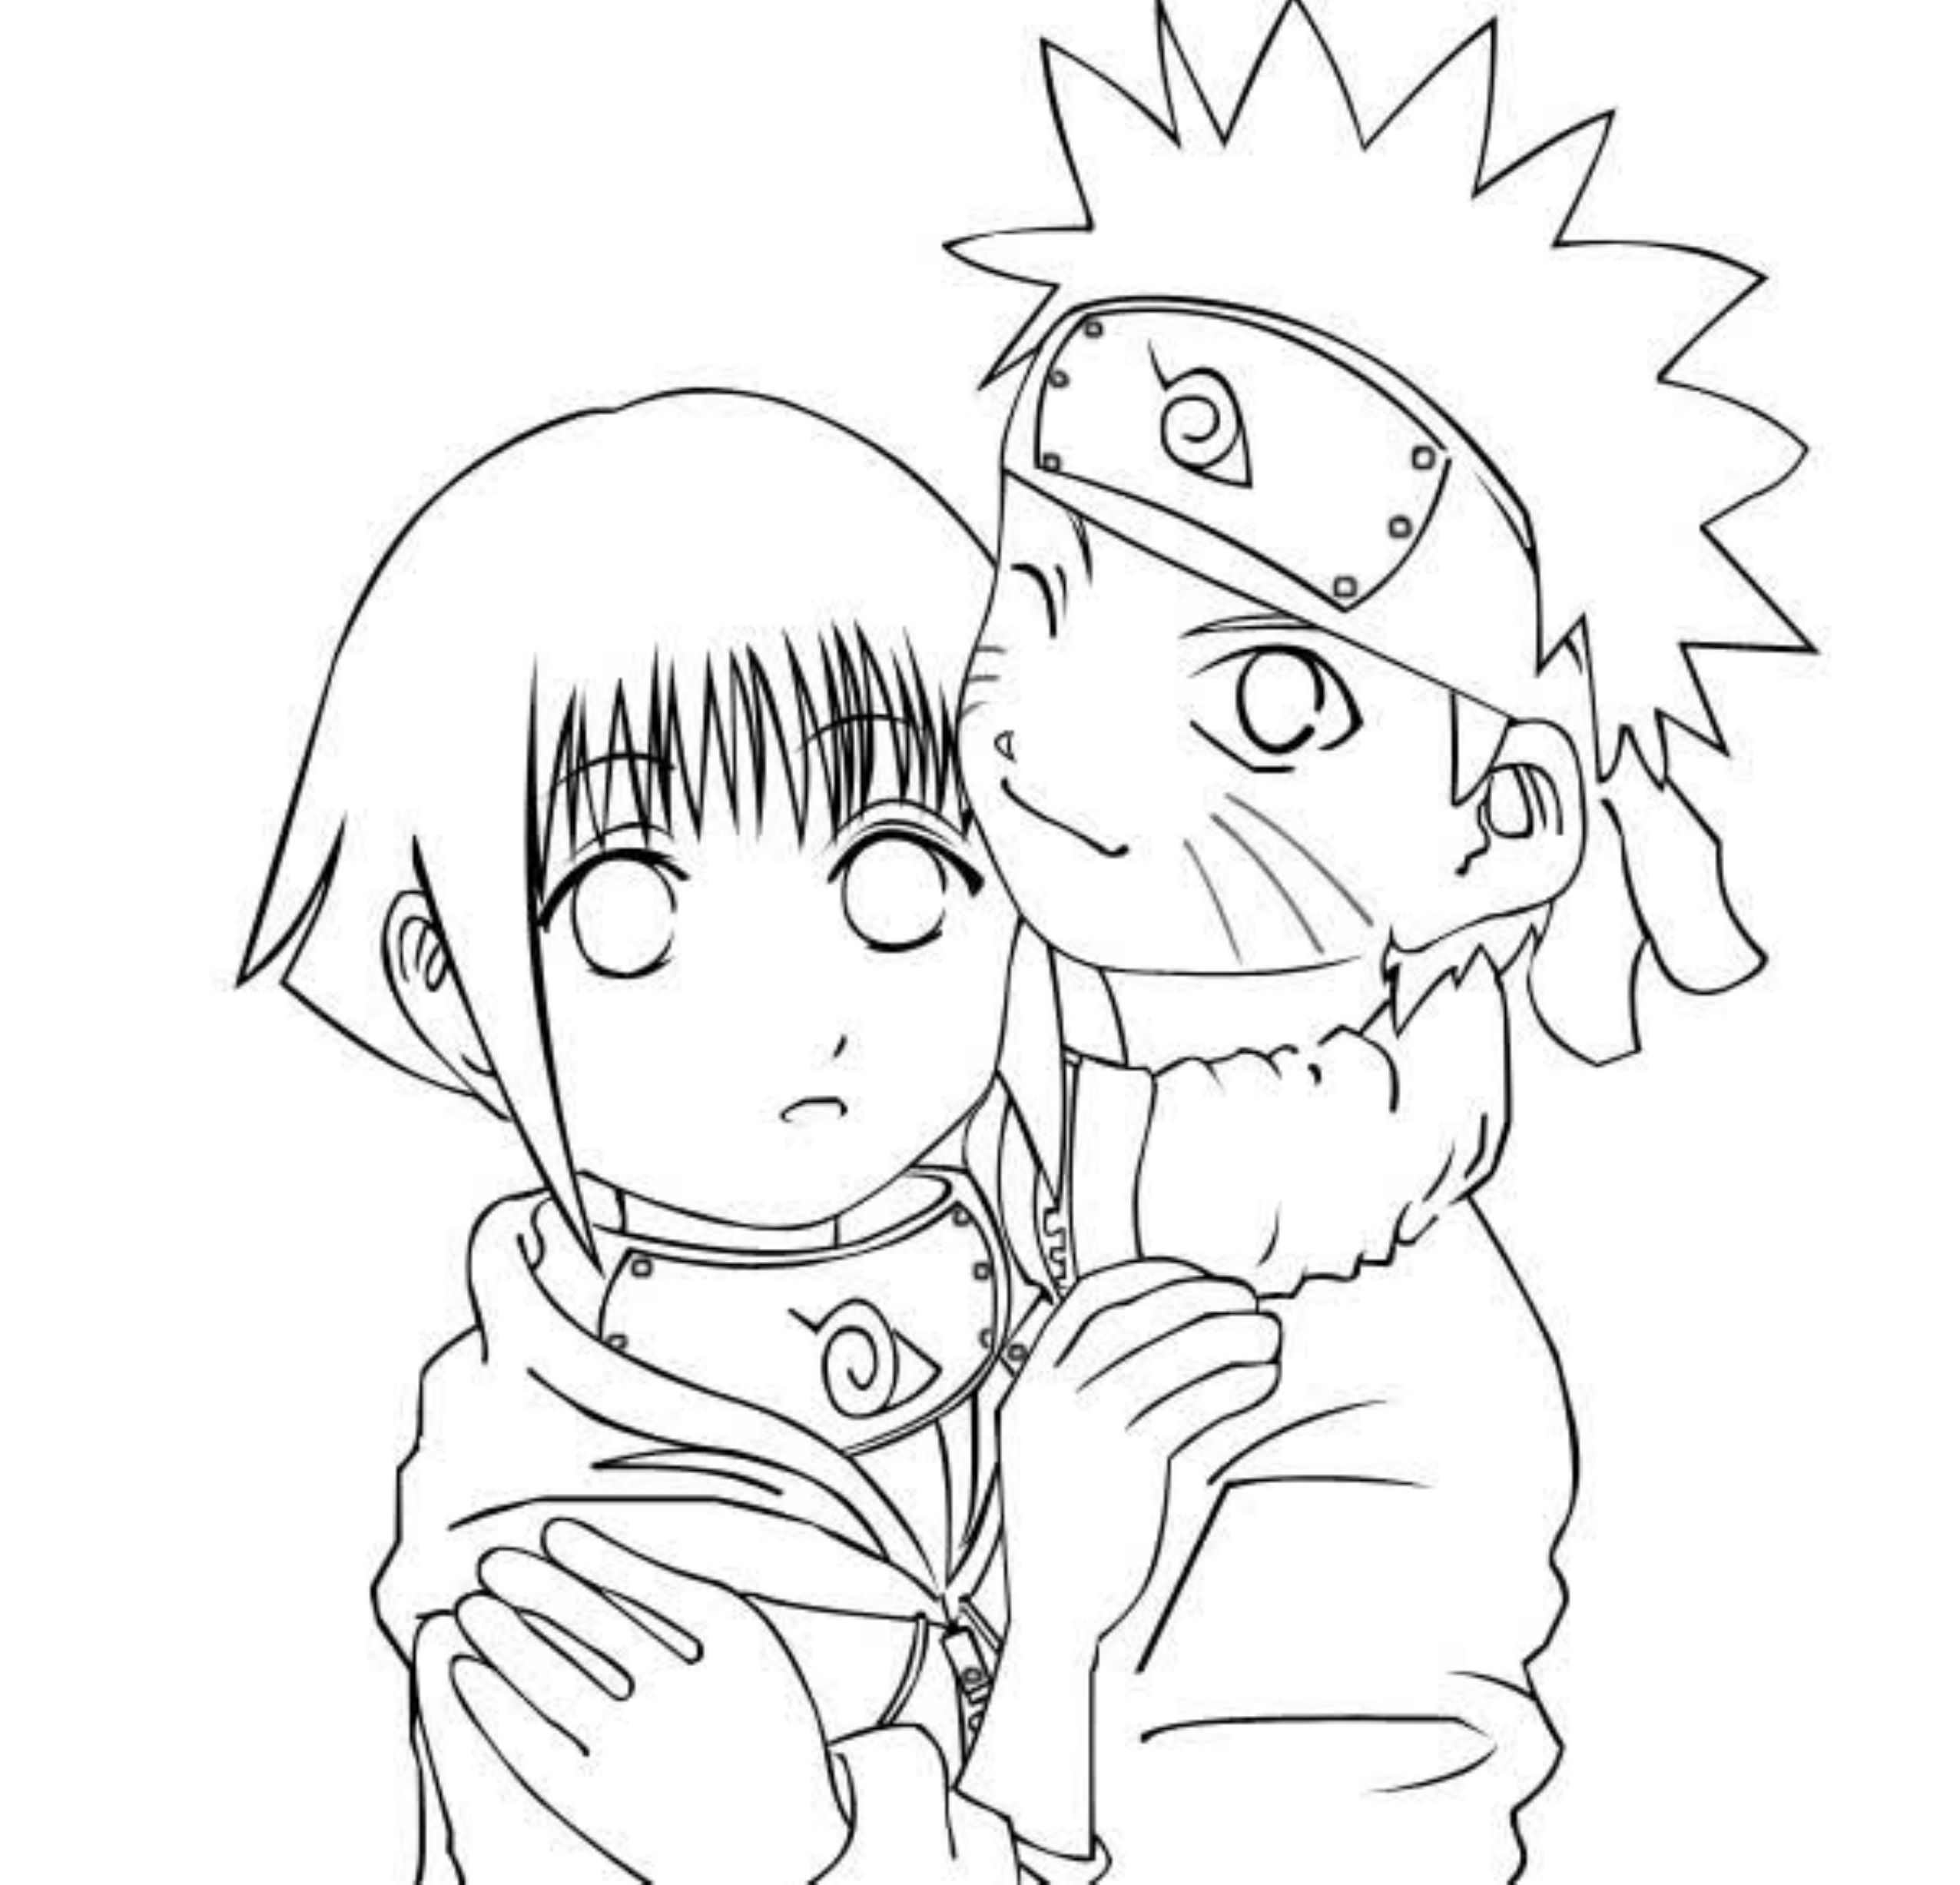 naruto coloring pages naruto to color for children naruto kids coloring pages pages coloring naruto 1 1